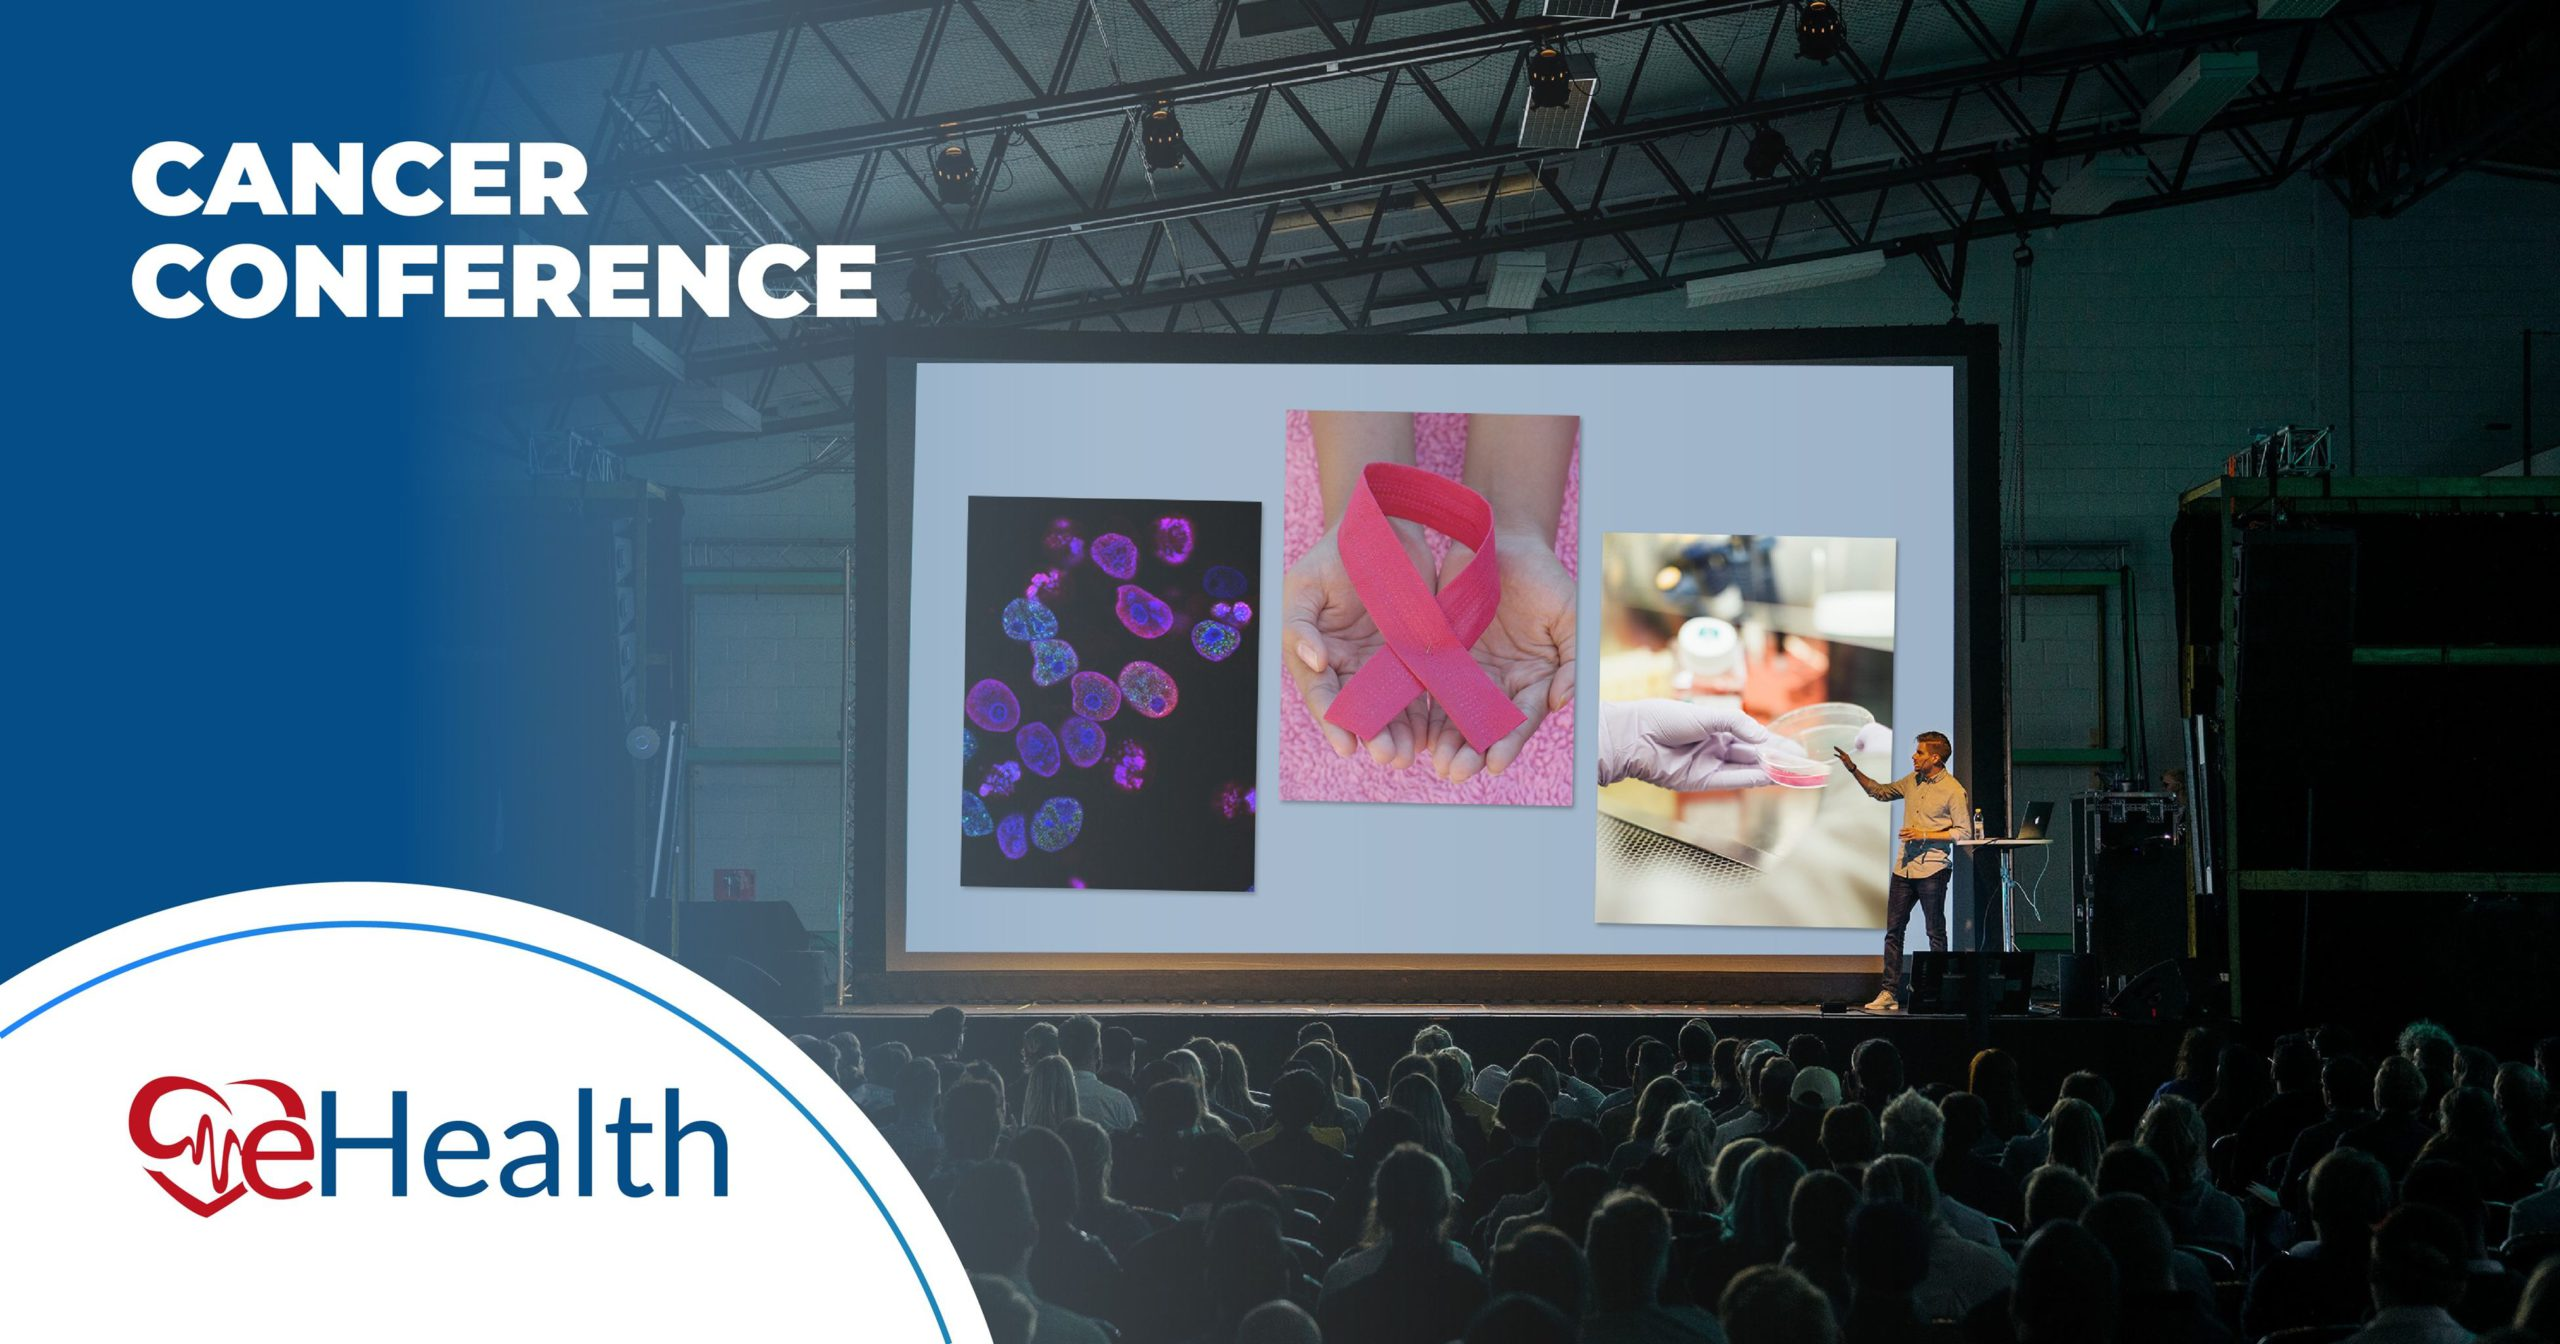 Discover the Cancer Conferences To Follow in 2021